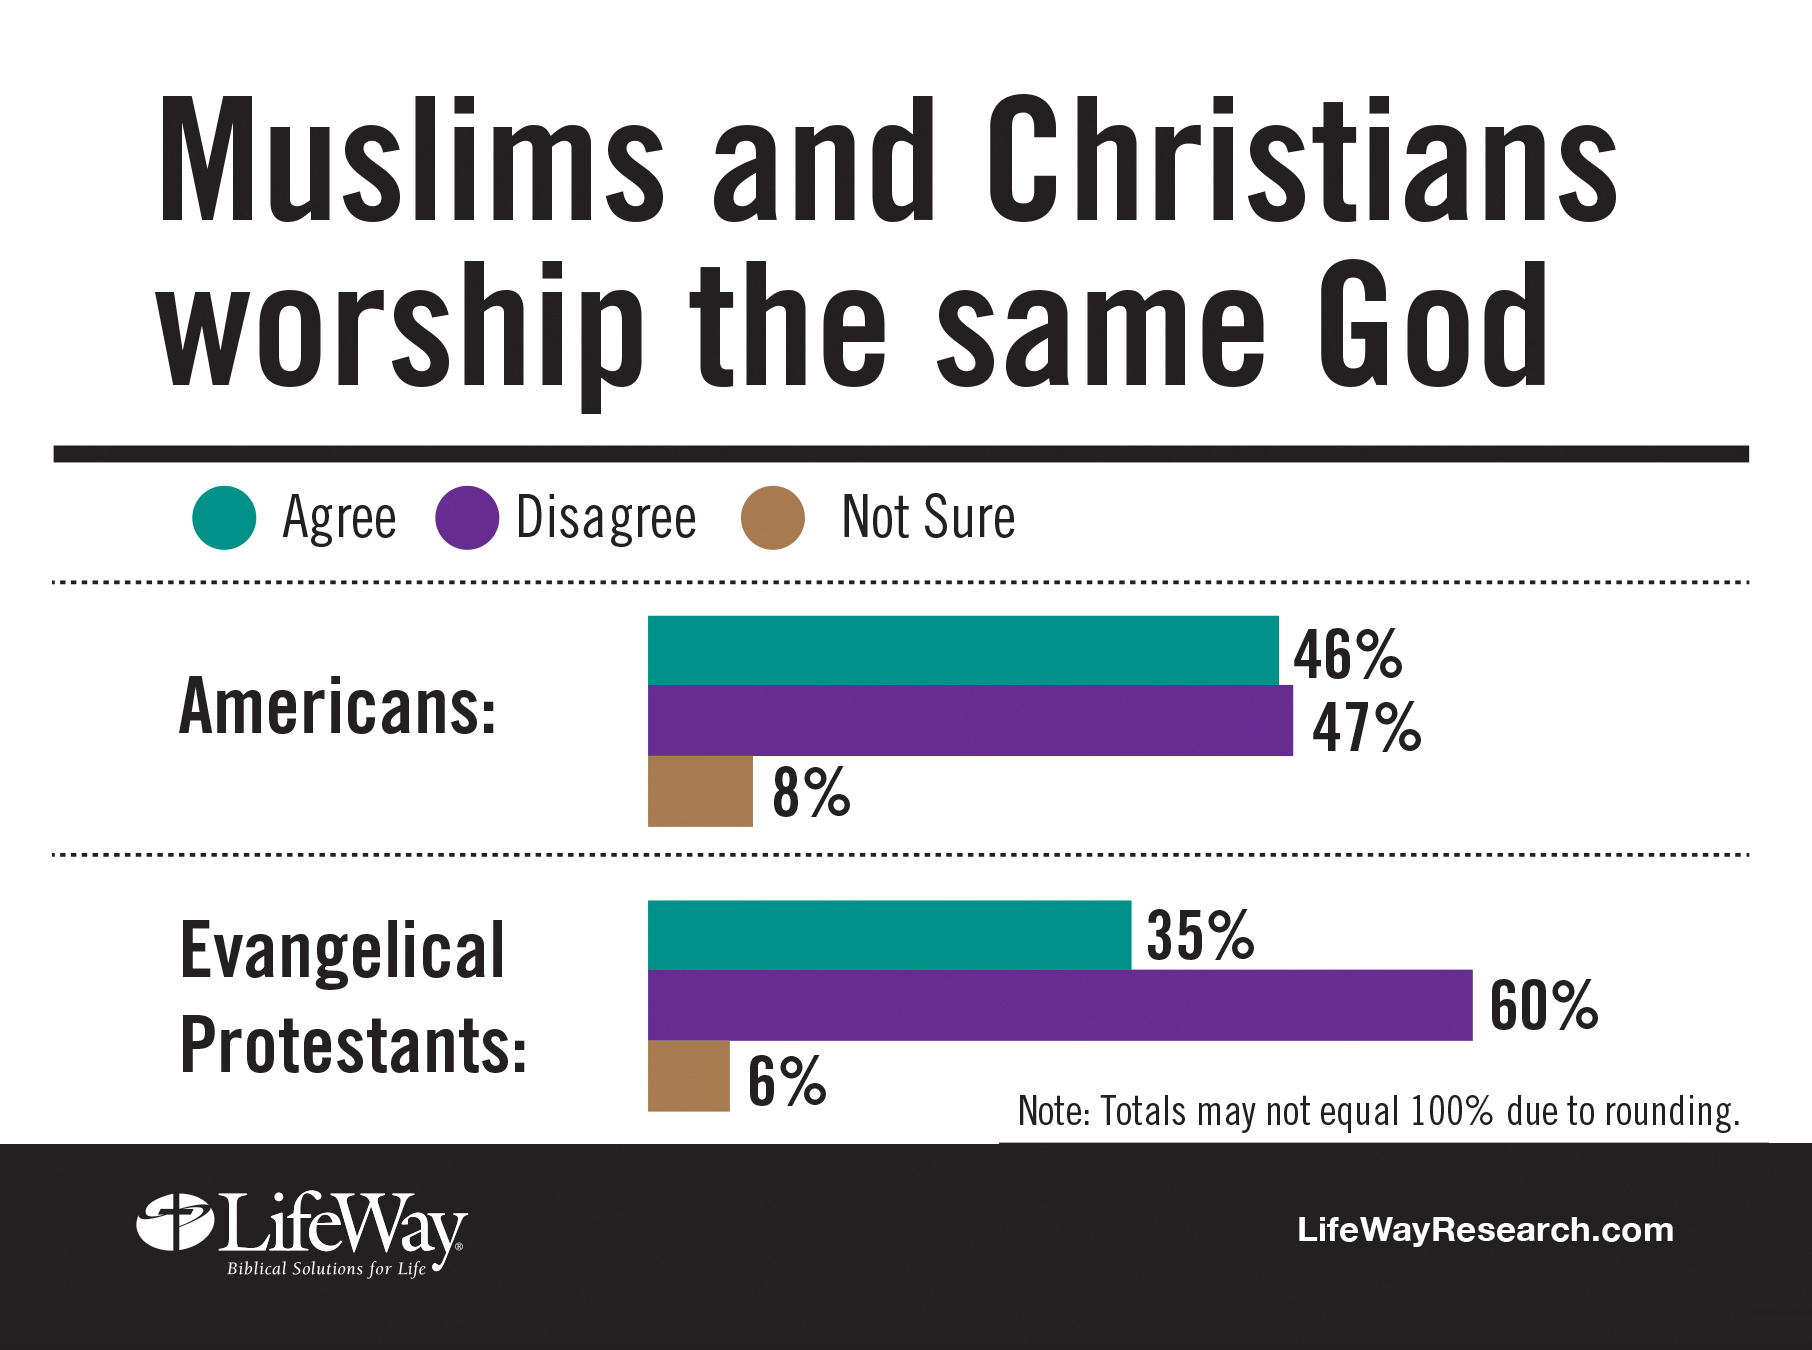 christianity and islam are they really different Compare christianity and islam christianity and islam are the two largest religions in the world to illustrate the similarities and differences between these religions, the following charts compares the origins, beliefs and practices of christianity and islam.